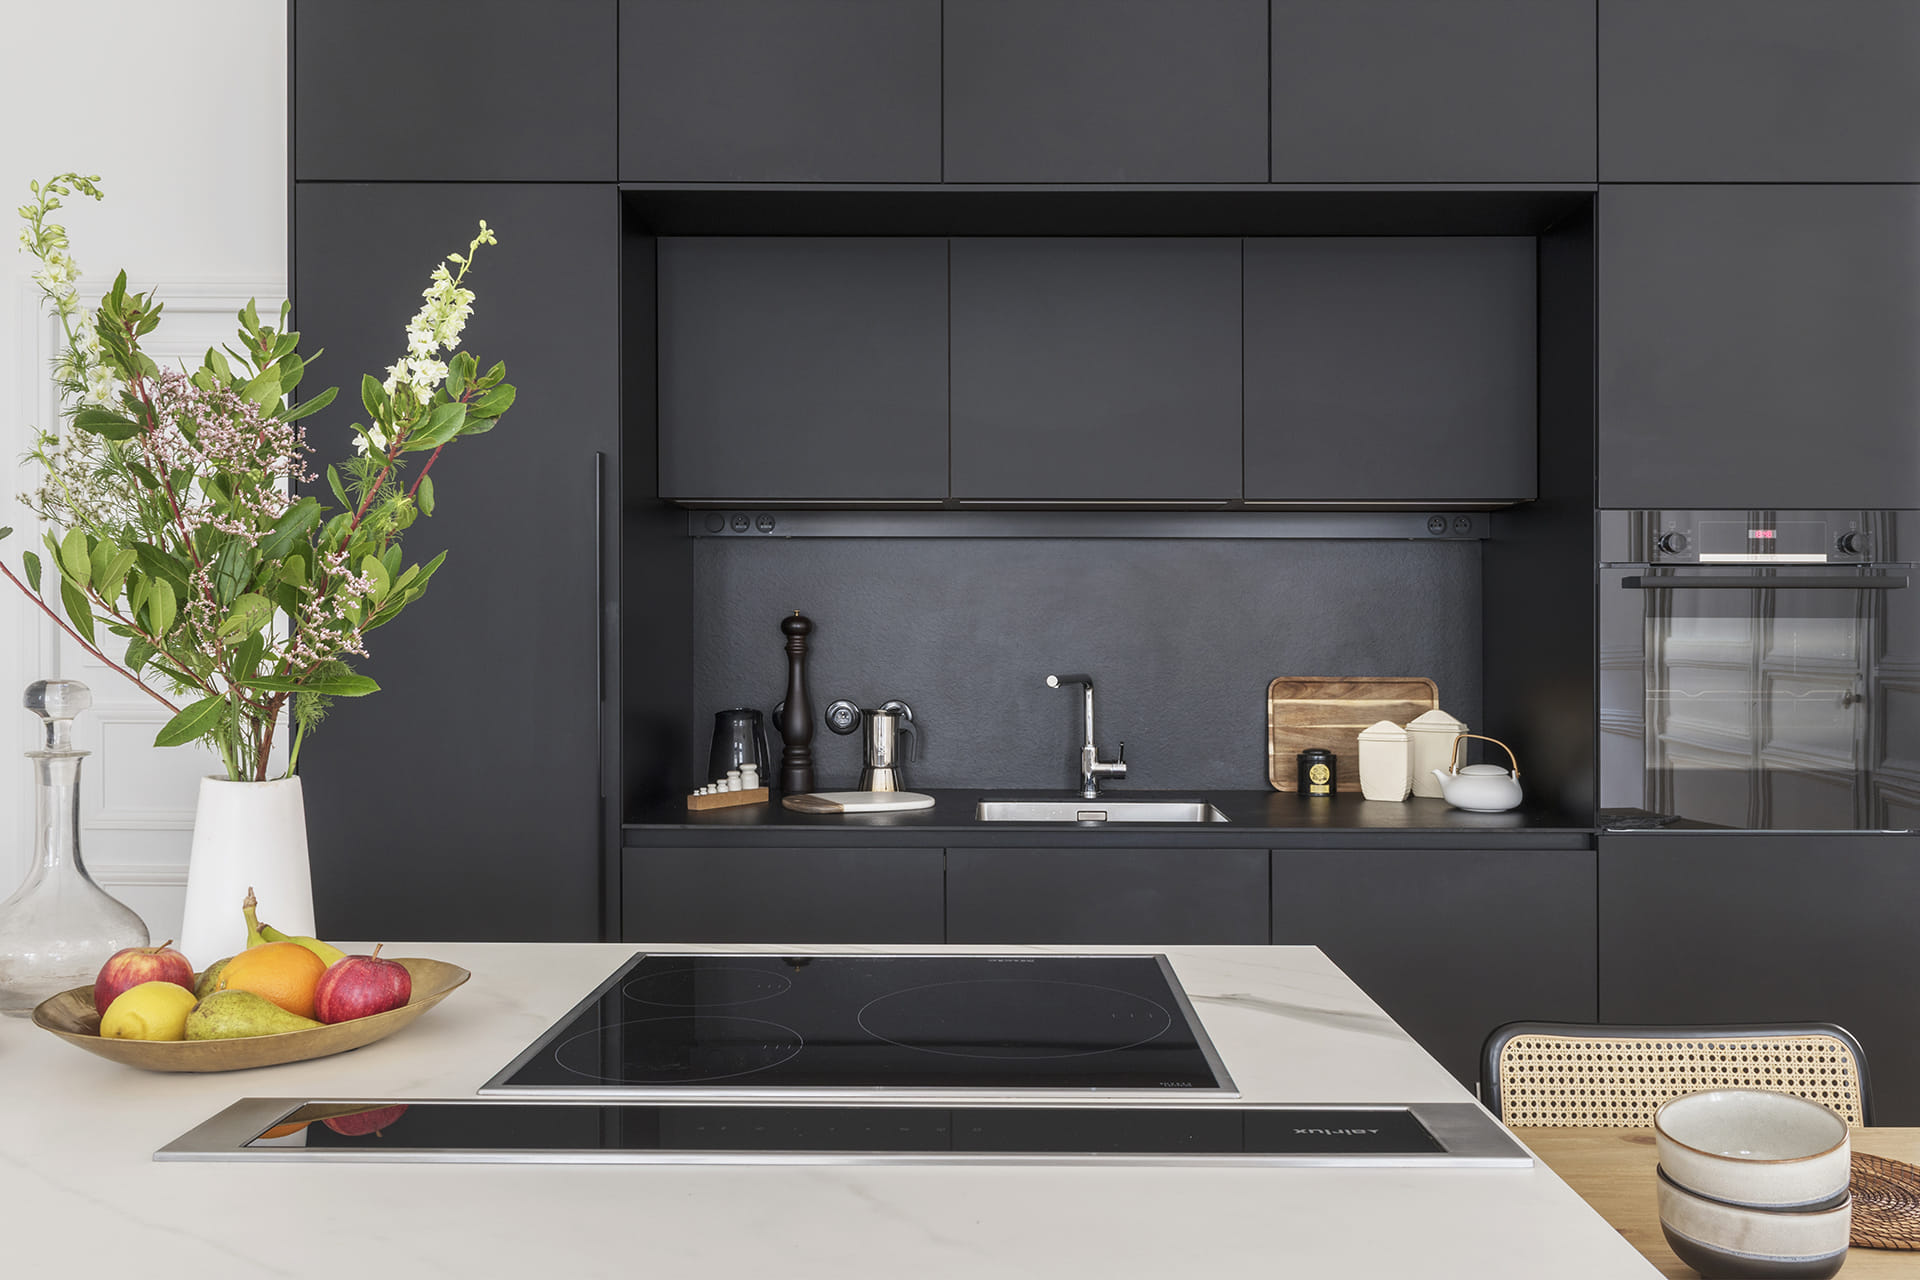 Santos black kitchen cabinets with tall units